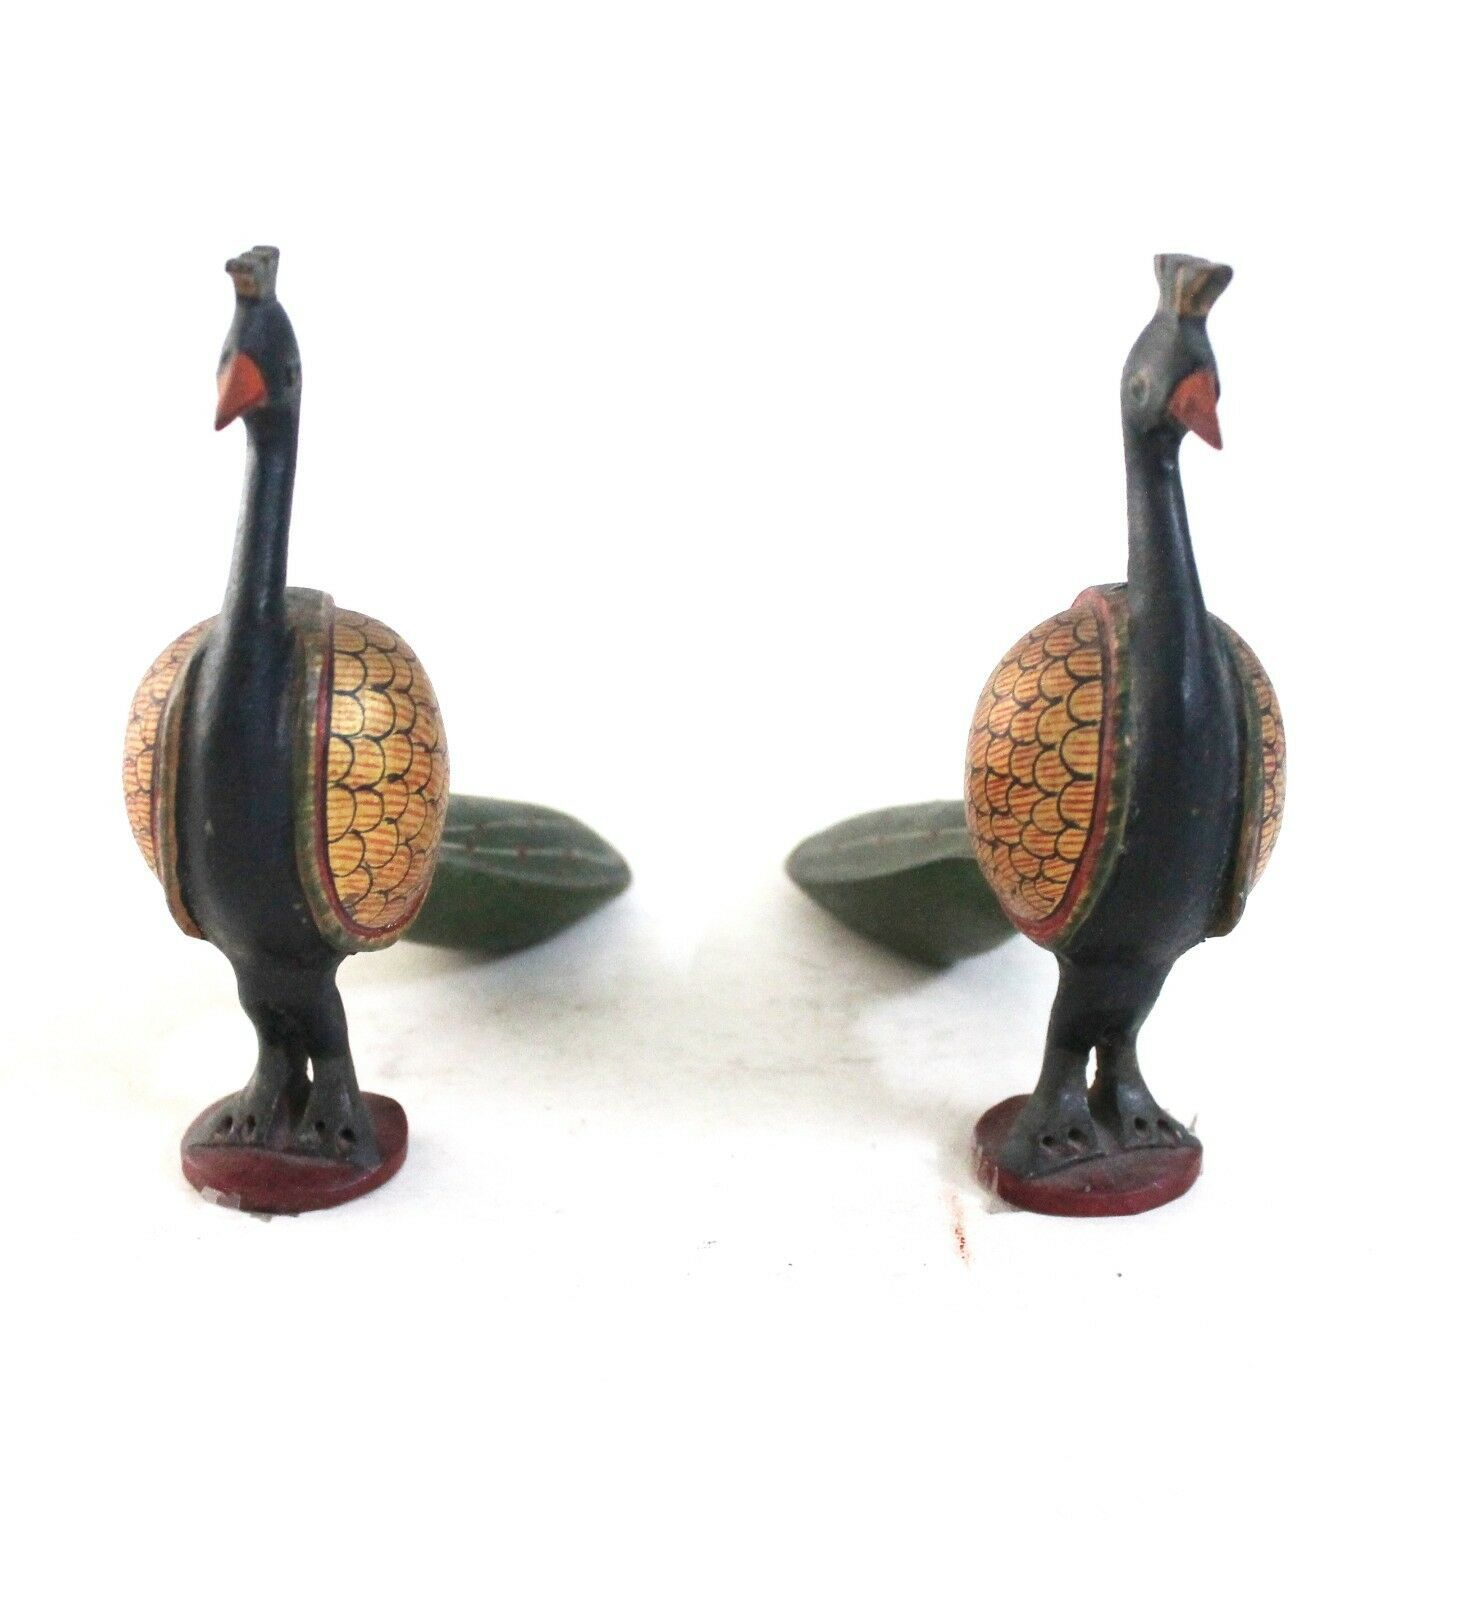 Peacock Pair Vintage Handcrafted Wooden Decorative Pieces Home Decor CA665WH